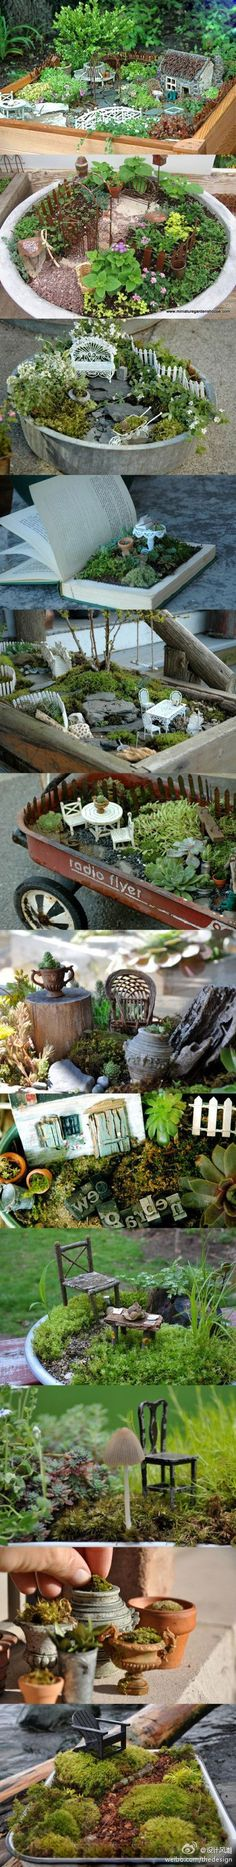 Miniature Fairy gardens. IKEA has a cute little glass terrarium that is calling my name. Going to try putting some our moss into small urns for the fairy garden. - DIY Fairy Gardens